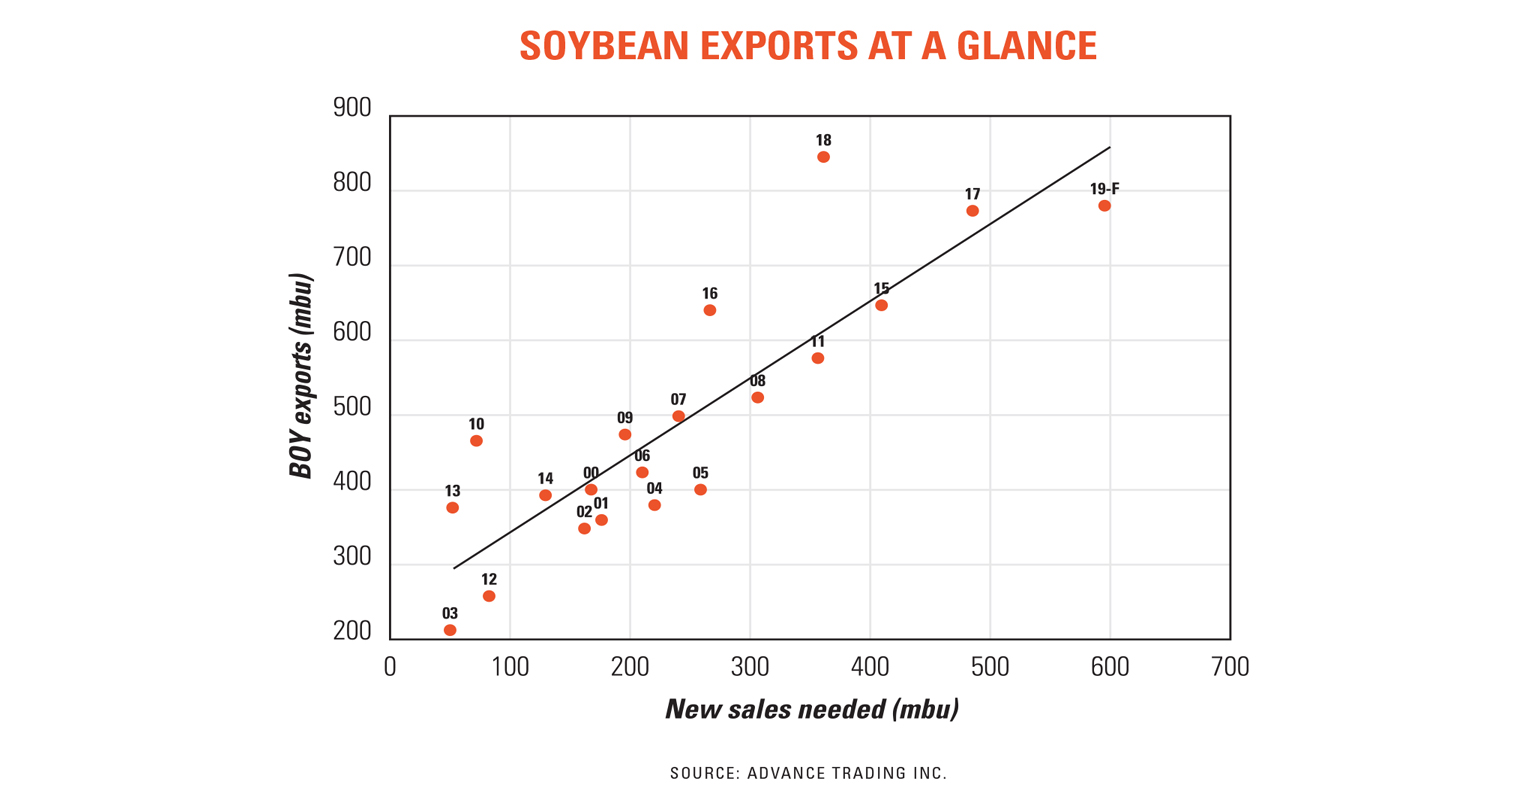 Soybean exports at a glance chart